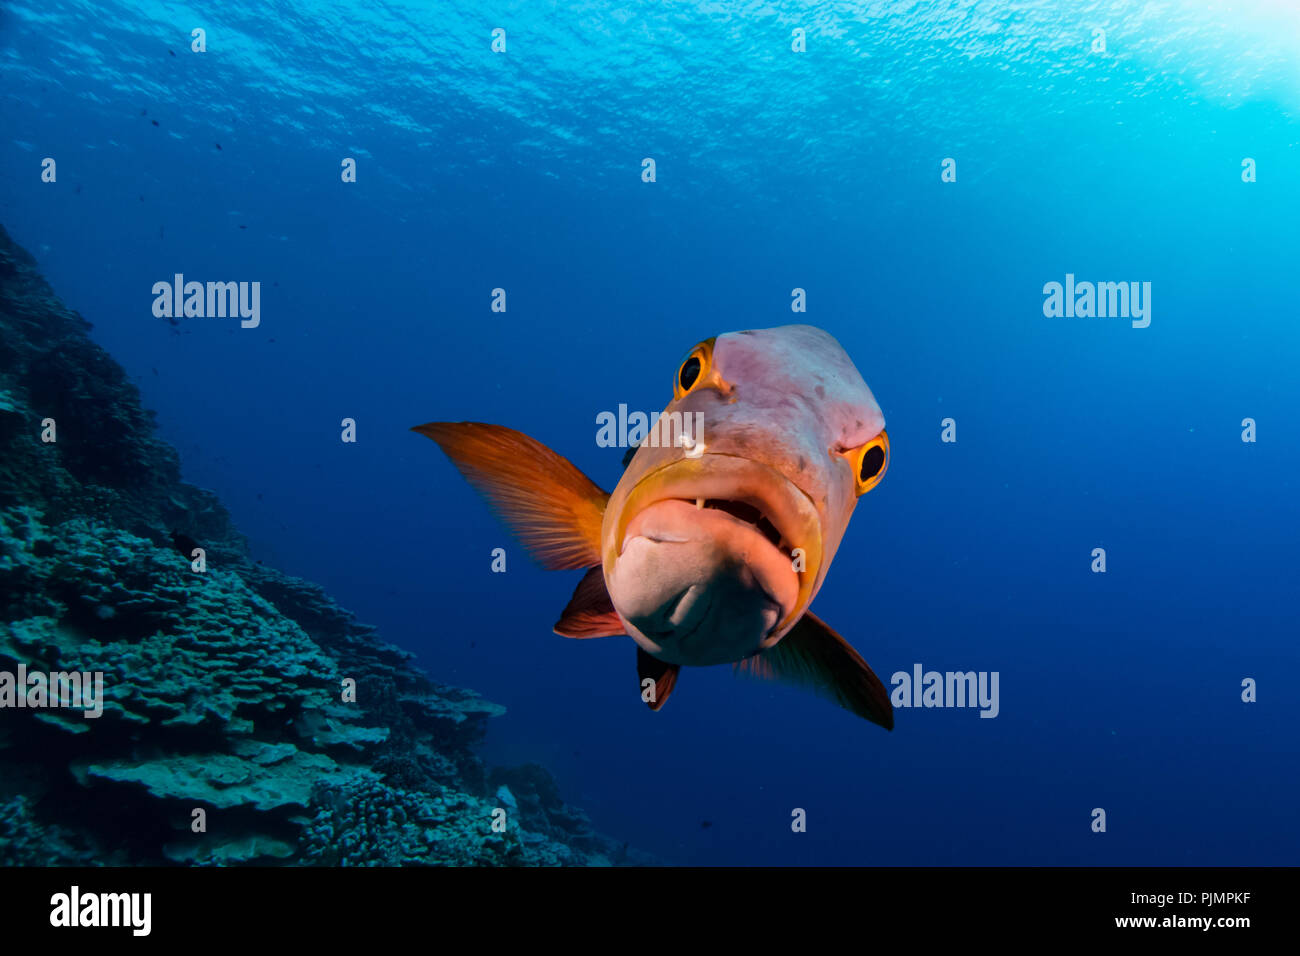 A curious red snapper or red bass approaches divers on the reef at Millennium Atoll, also known as Caroline Island in Kiribati, South Pacific Stock Photo